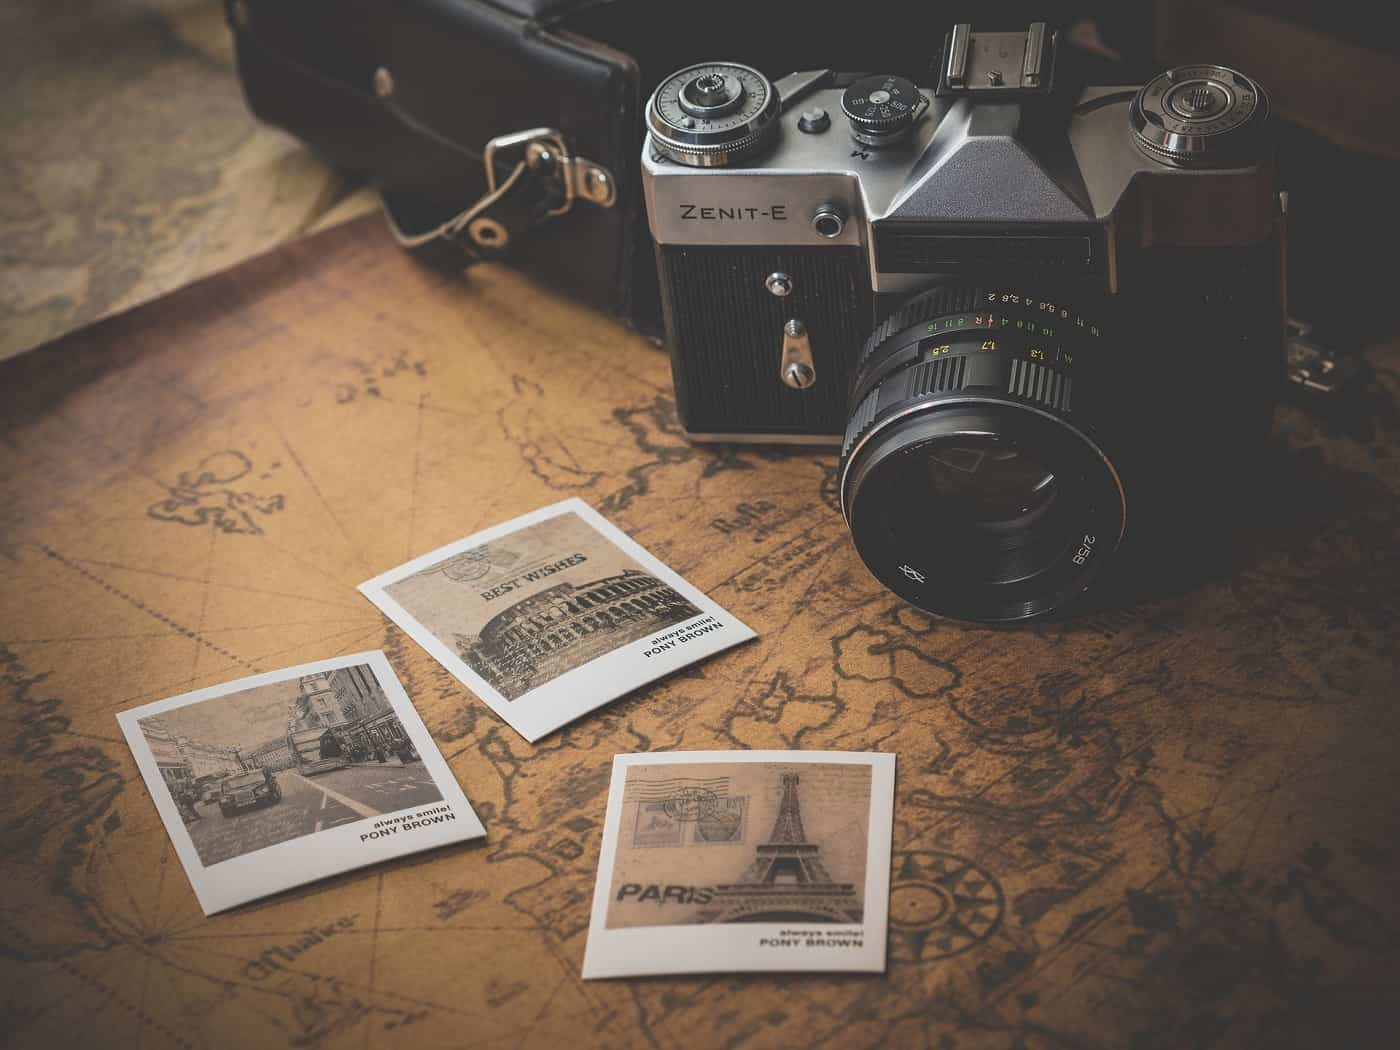 Old camera, map and snapshot photos - Cost-effective travel